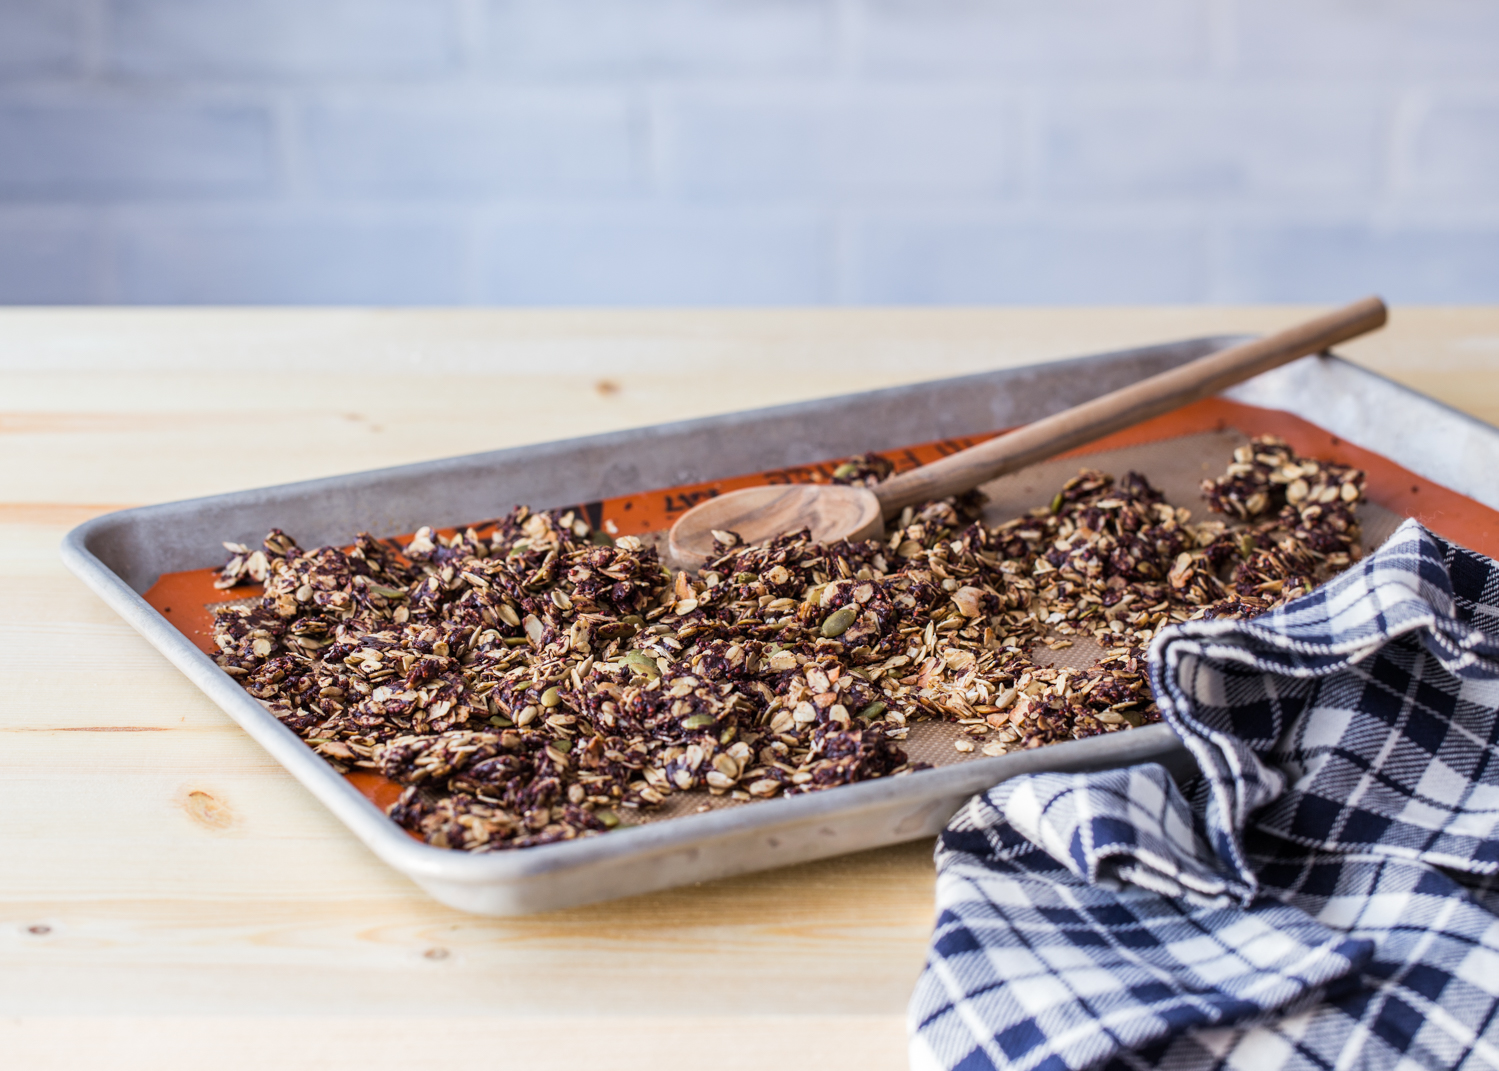 Chocolate Coconut Granola is great on it's own or as a topping to rich, tangy Greek yogurt